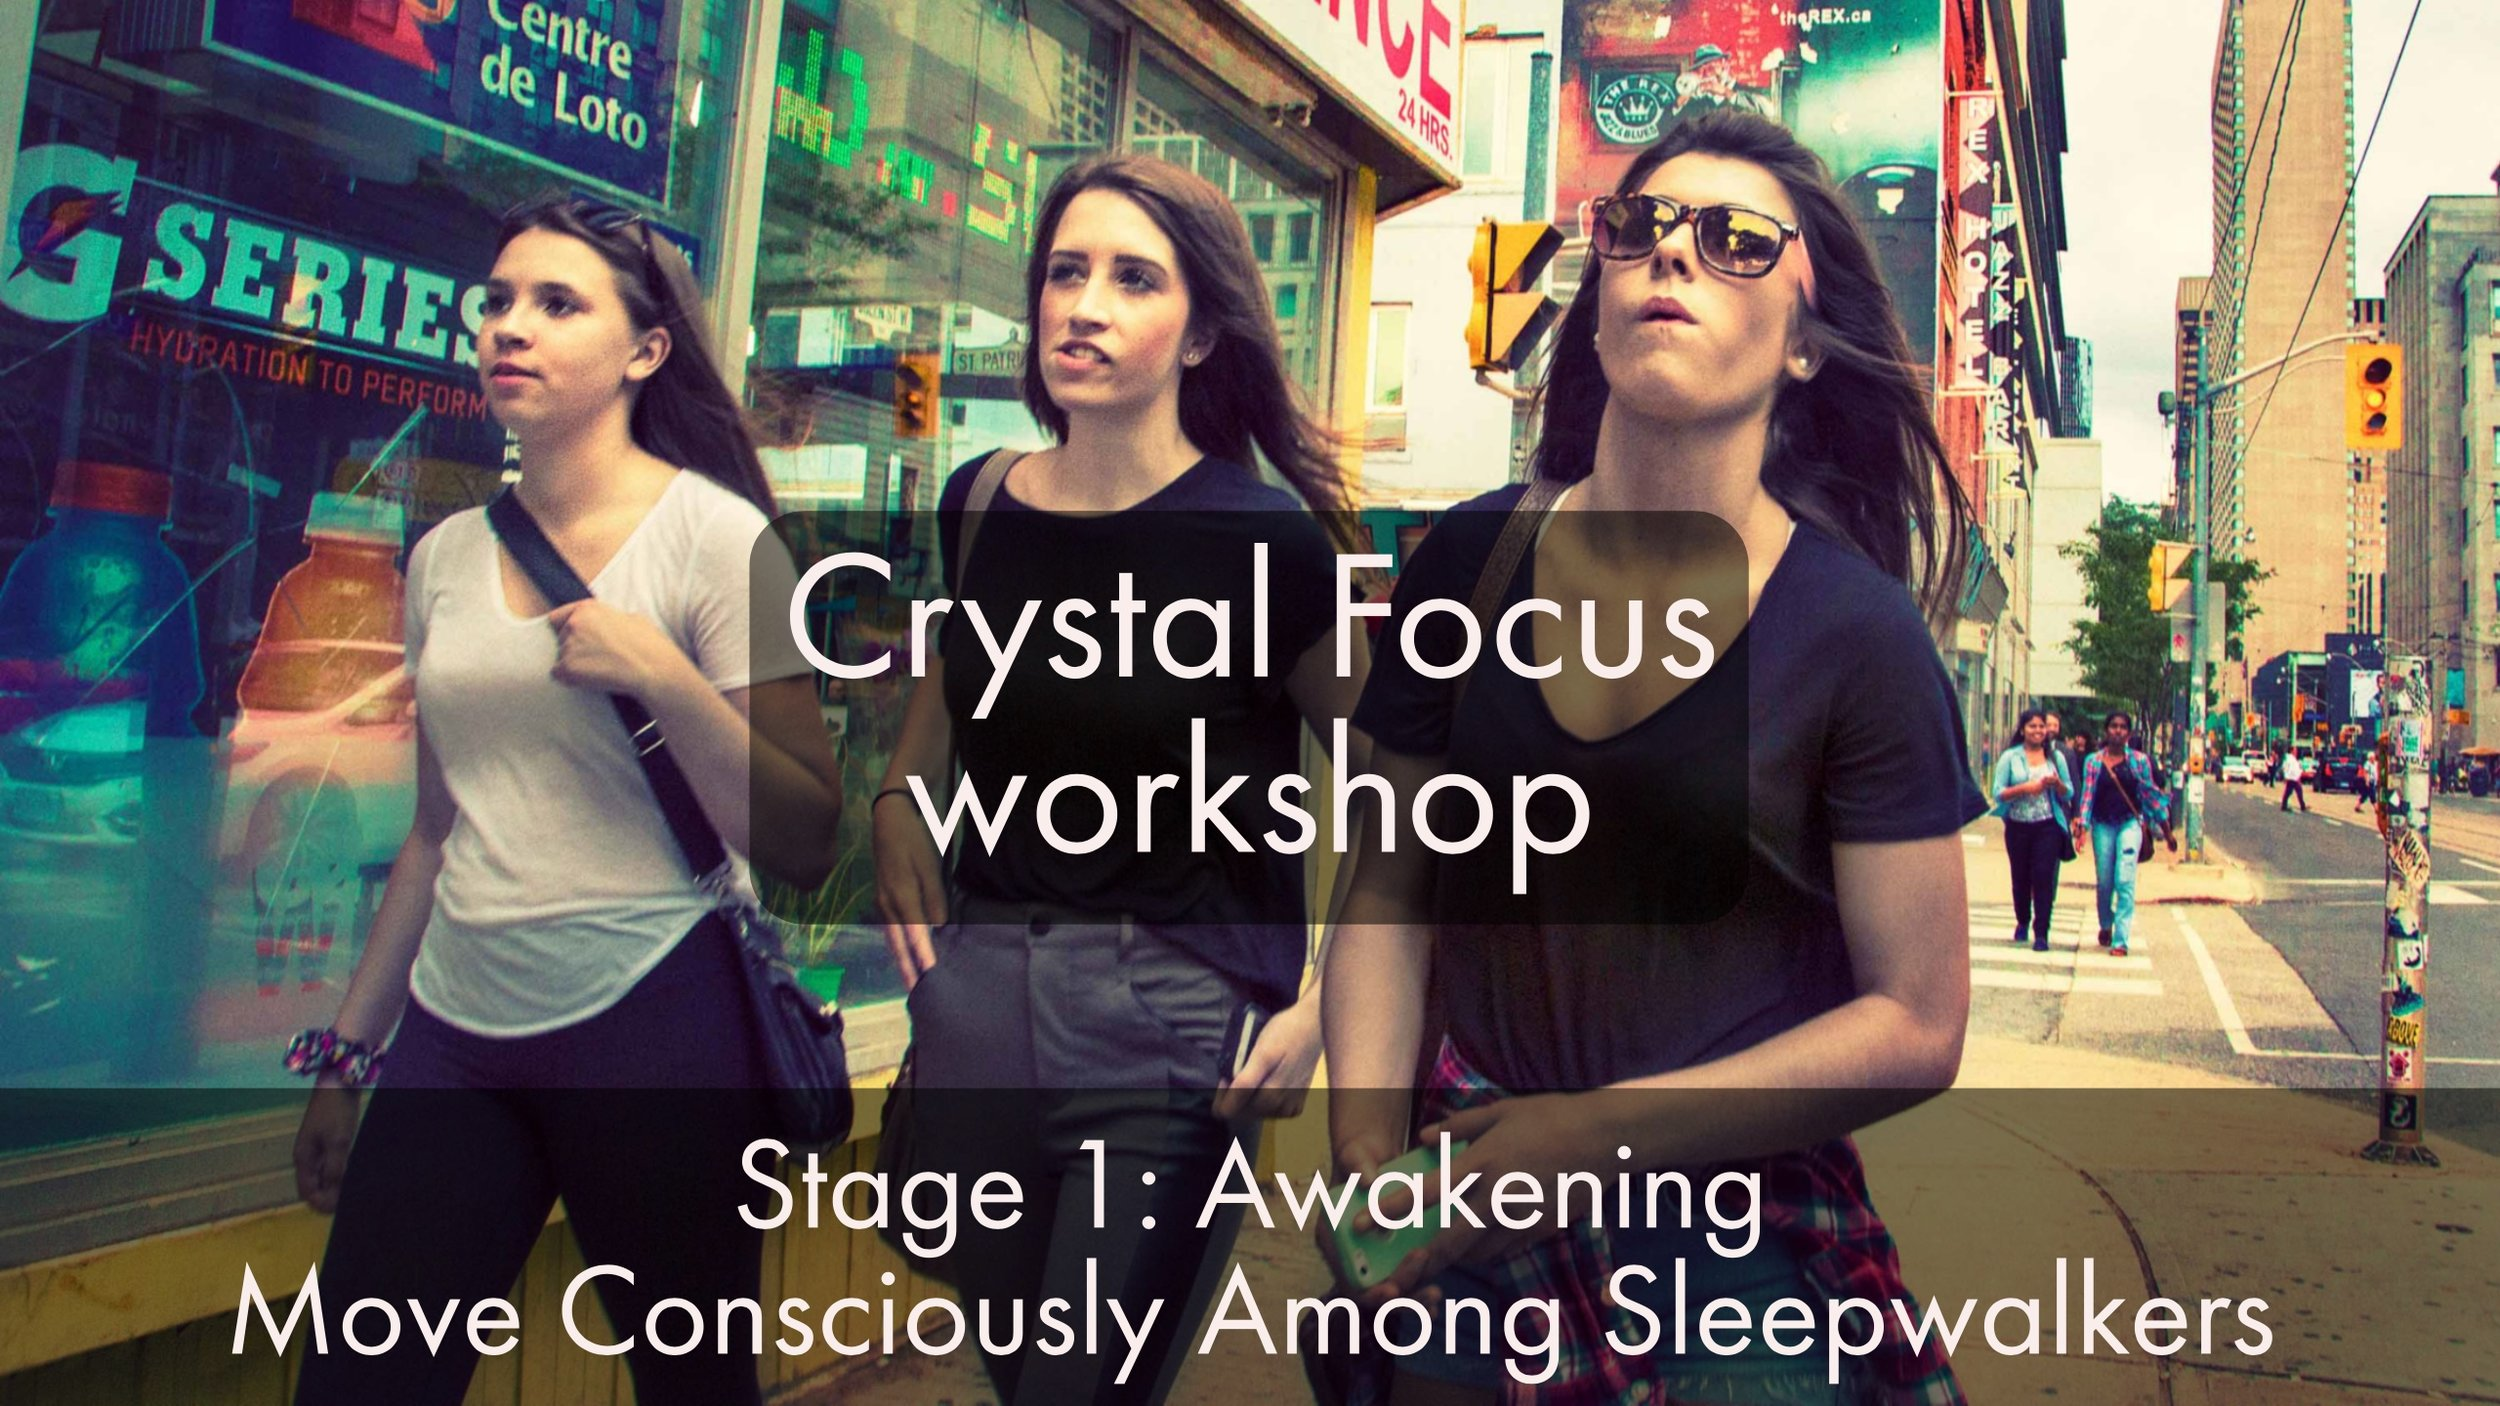 Coming soon:Now you know how to wake up not only from dreams, but also in reality. However, knowing does not mean understanding. True understanding will only come by doing it yourself. Just like with learning how to bike, or pretty much anything else. Get together with a small group of likeminded people in my  Crystal Focus  workshop and take a conscious walk among SleepWalkers. You will experience Reality from a totally new angle...